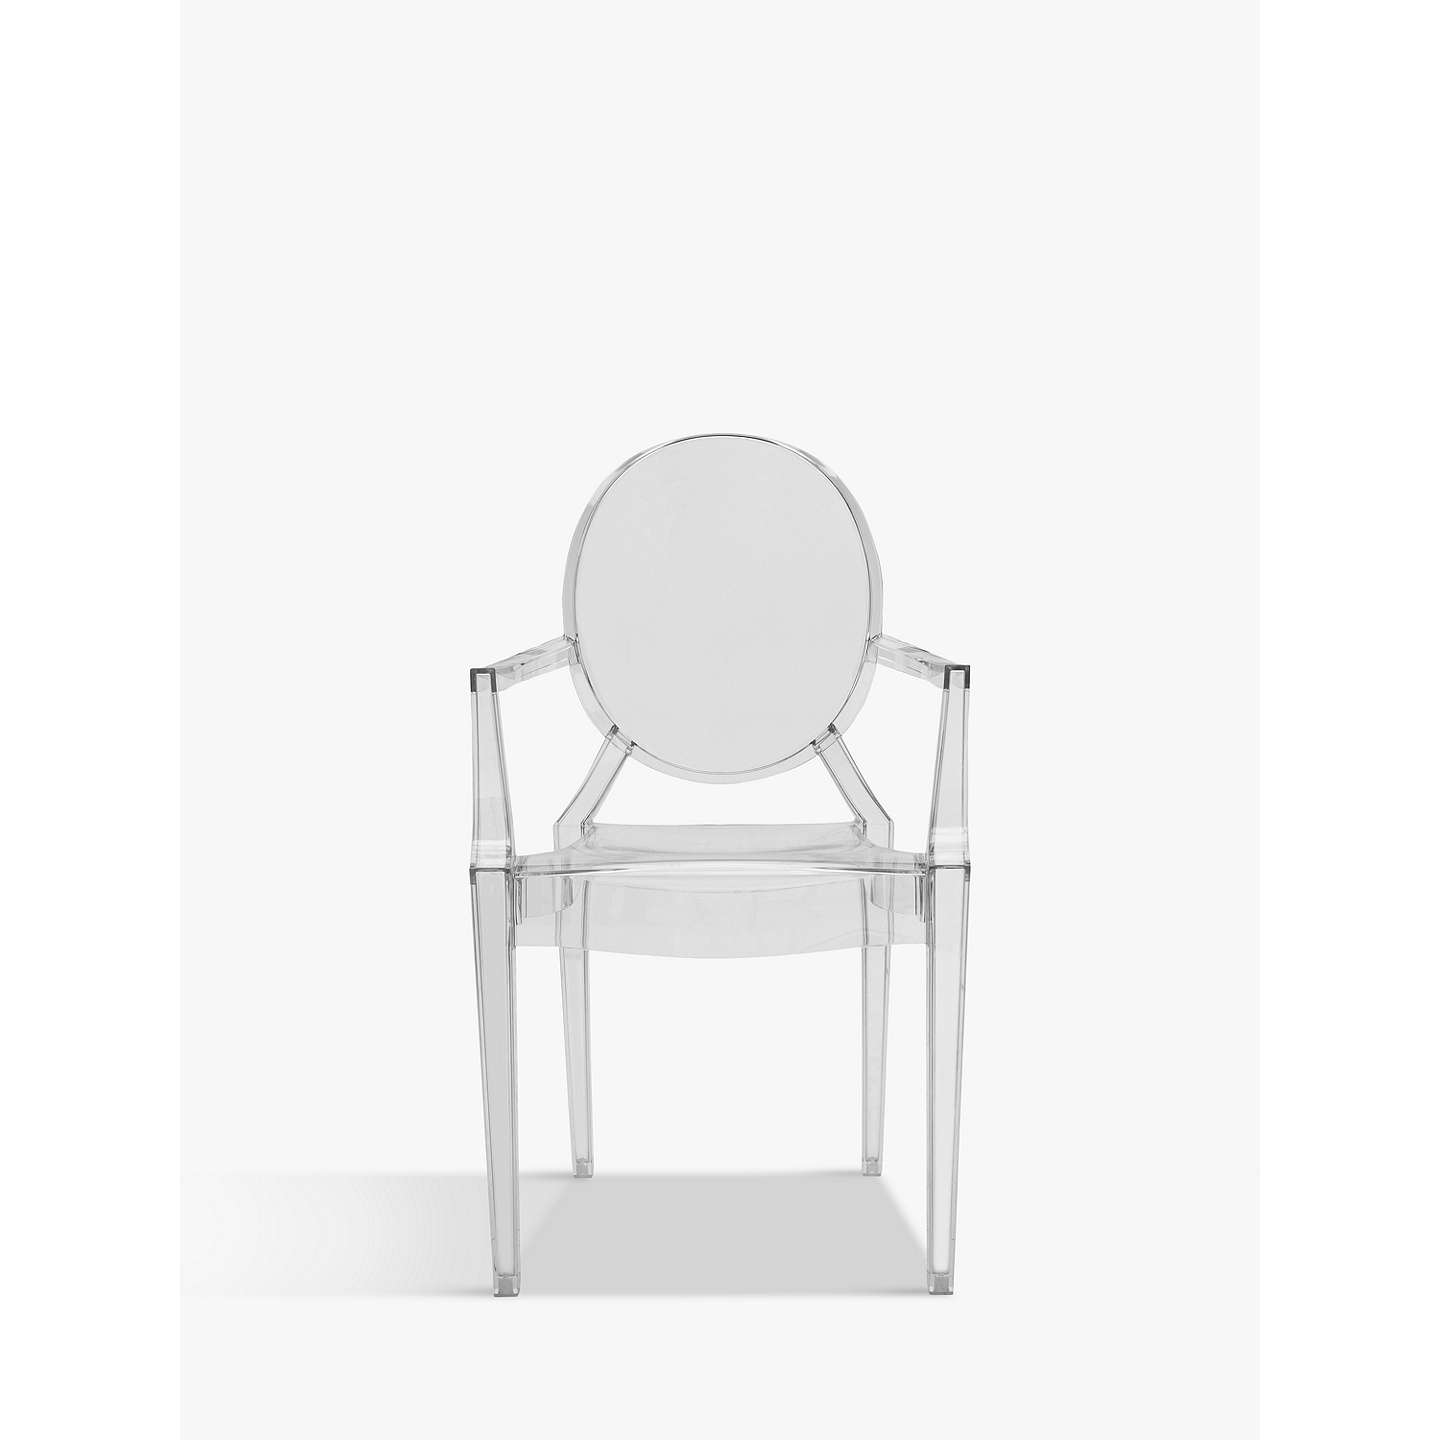 BuyPhilippe Starck for Kartell Louis Ghost Chair, Crystal Online at johnlewis.com